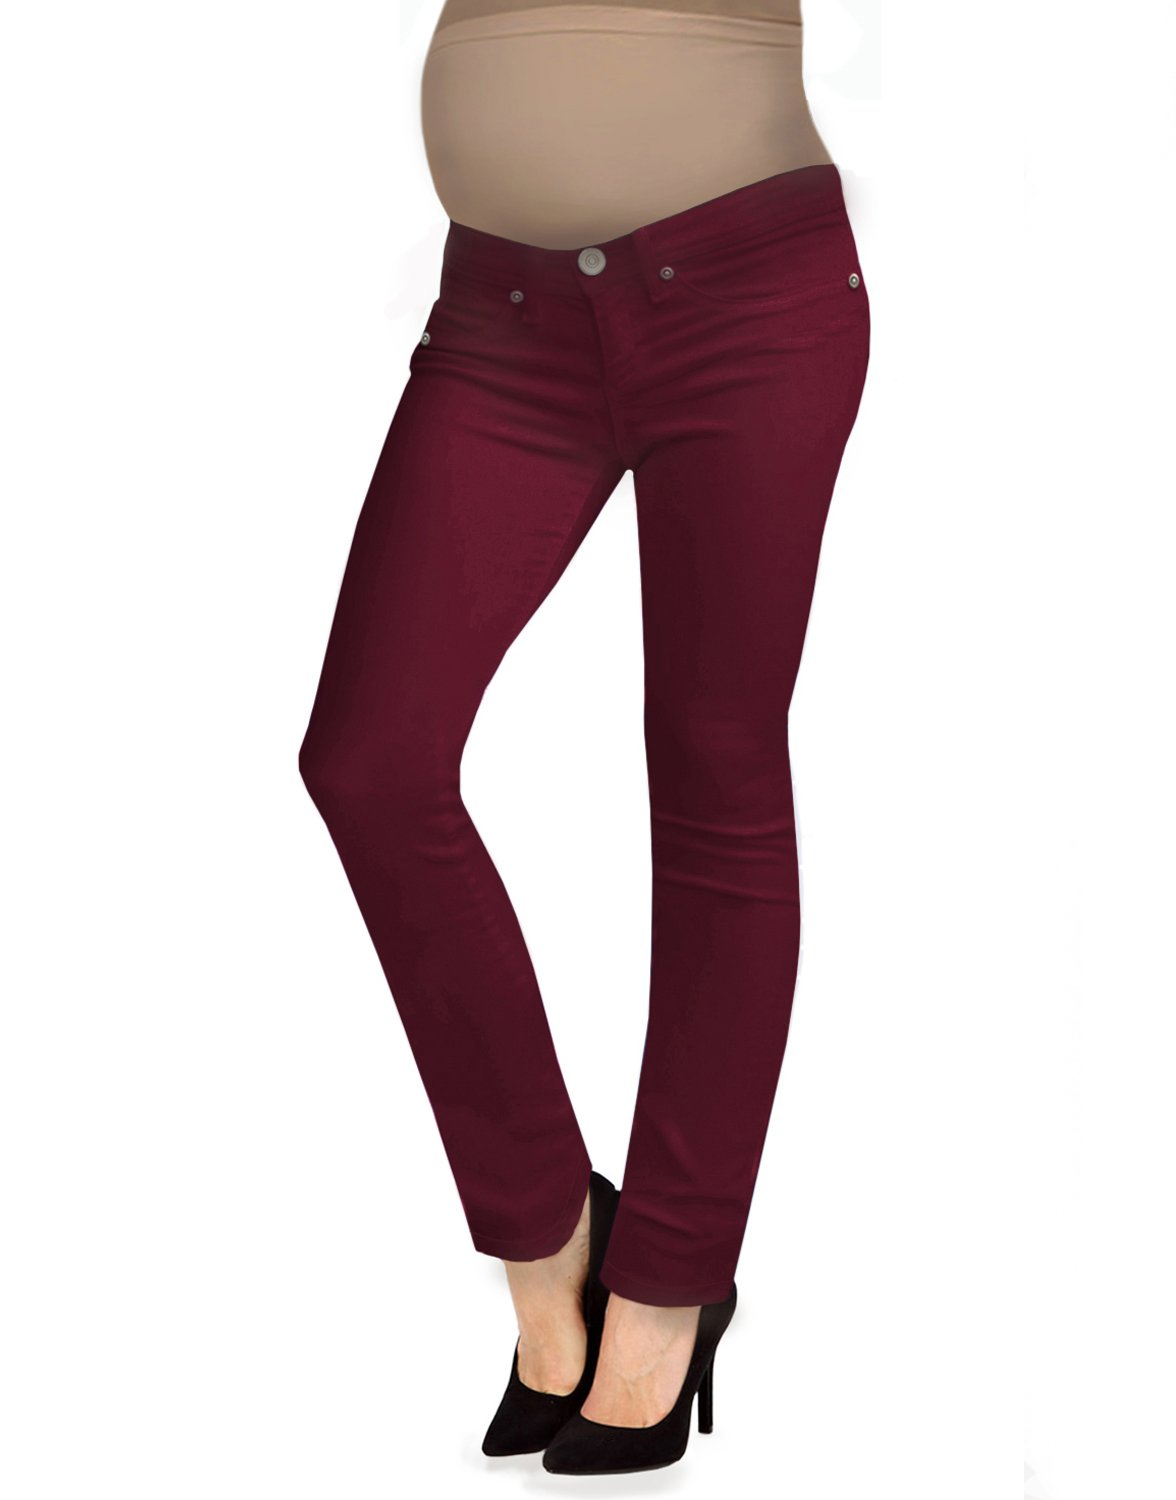 HyBrid & Company Super Comfy Stretch Women's Maternity Bootcut Jeans PM2835CDS Maroon Small